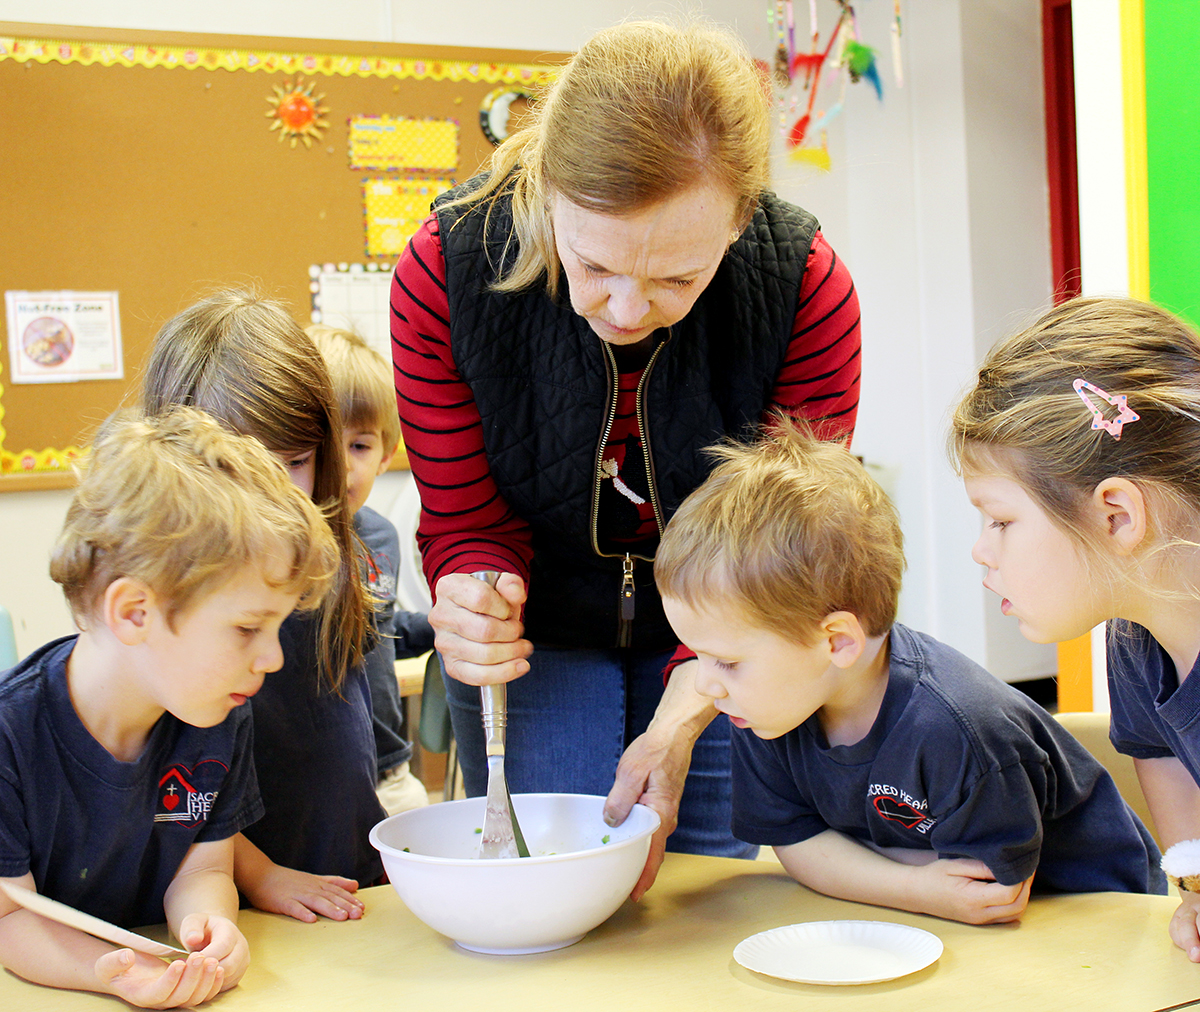 Students at Sacred Heart Villa Preschool on The Hill in St. Louis learn how to make 'smashy peas' from chef and Master Gardener Margaret Grant. Photo by Linda Geist.